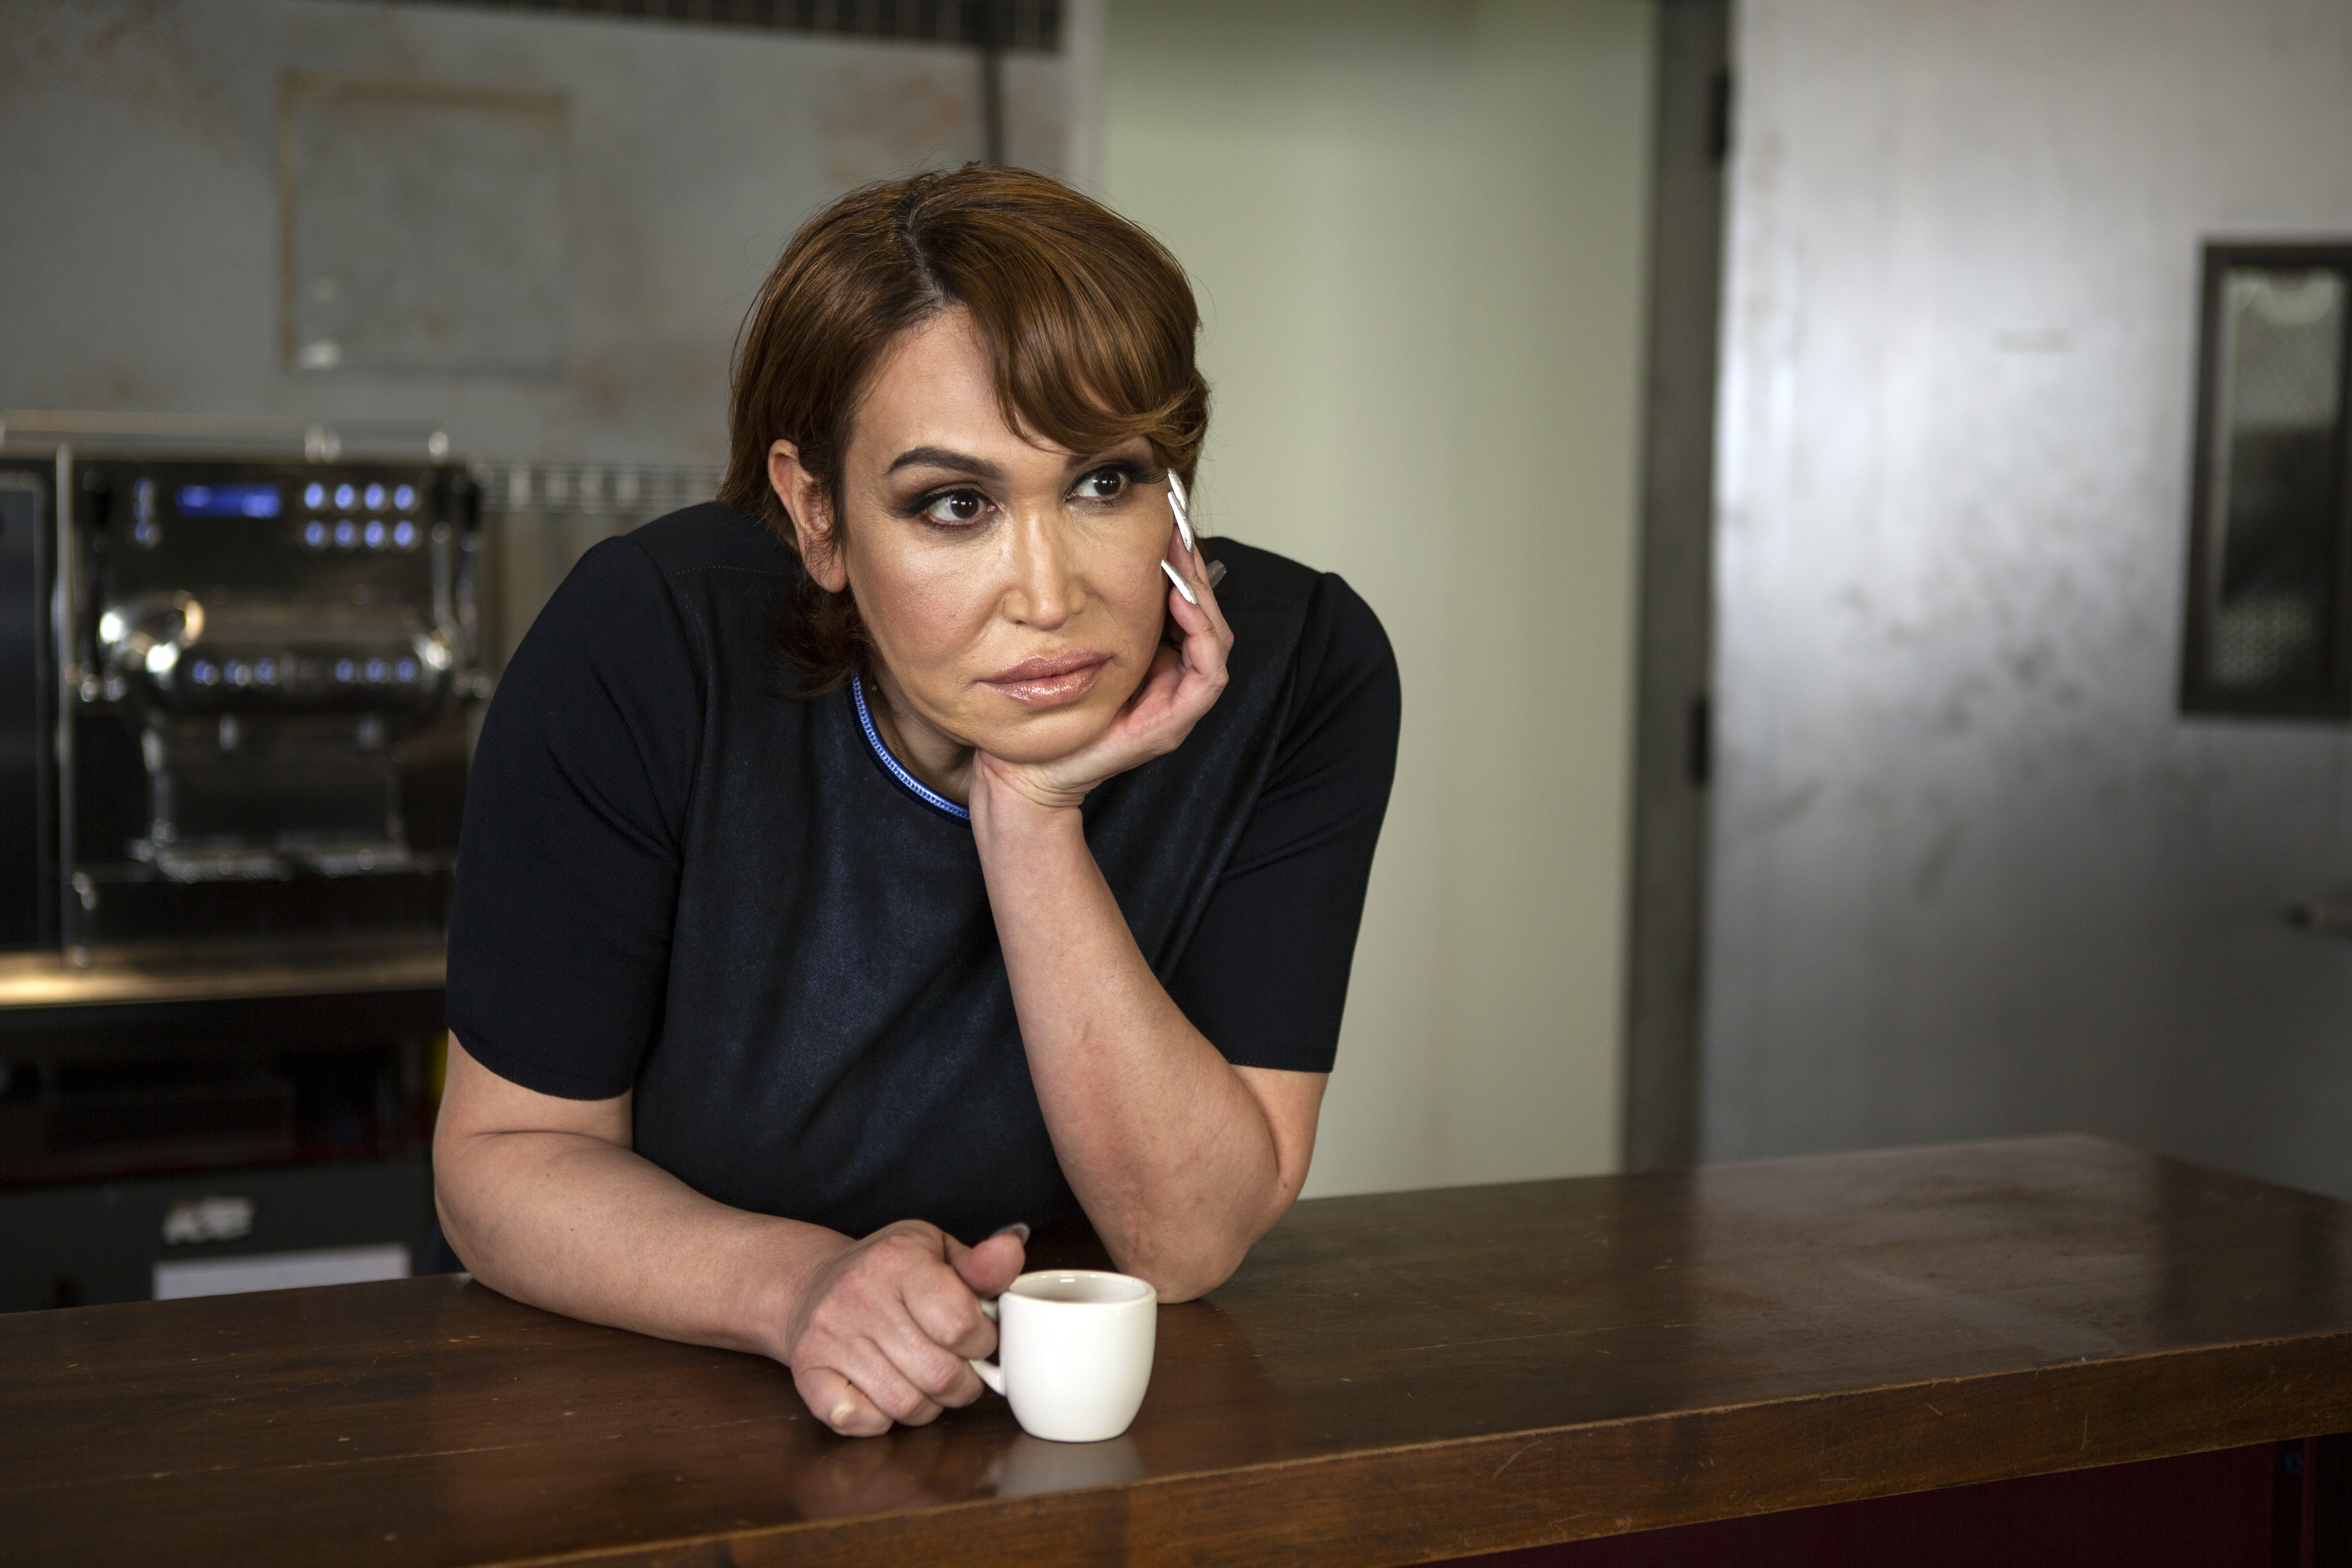 A transgender woman with an espresso standing at a bar and contemplating